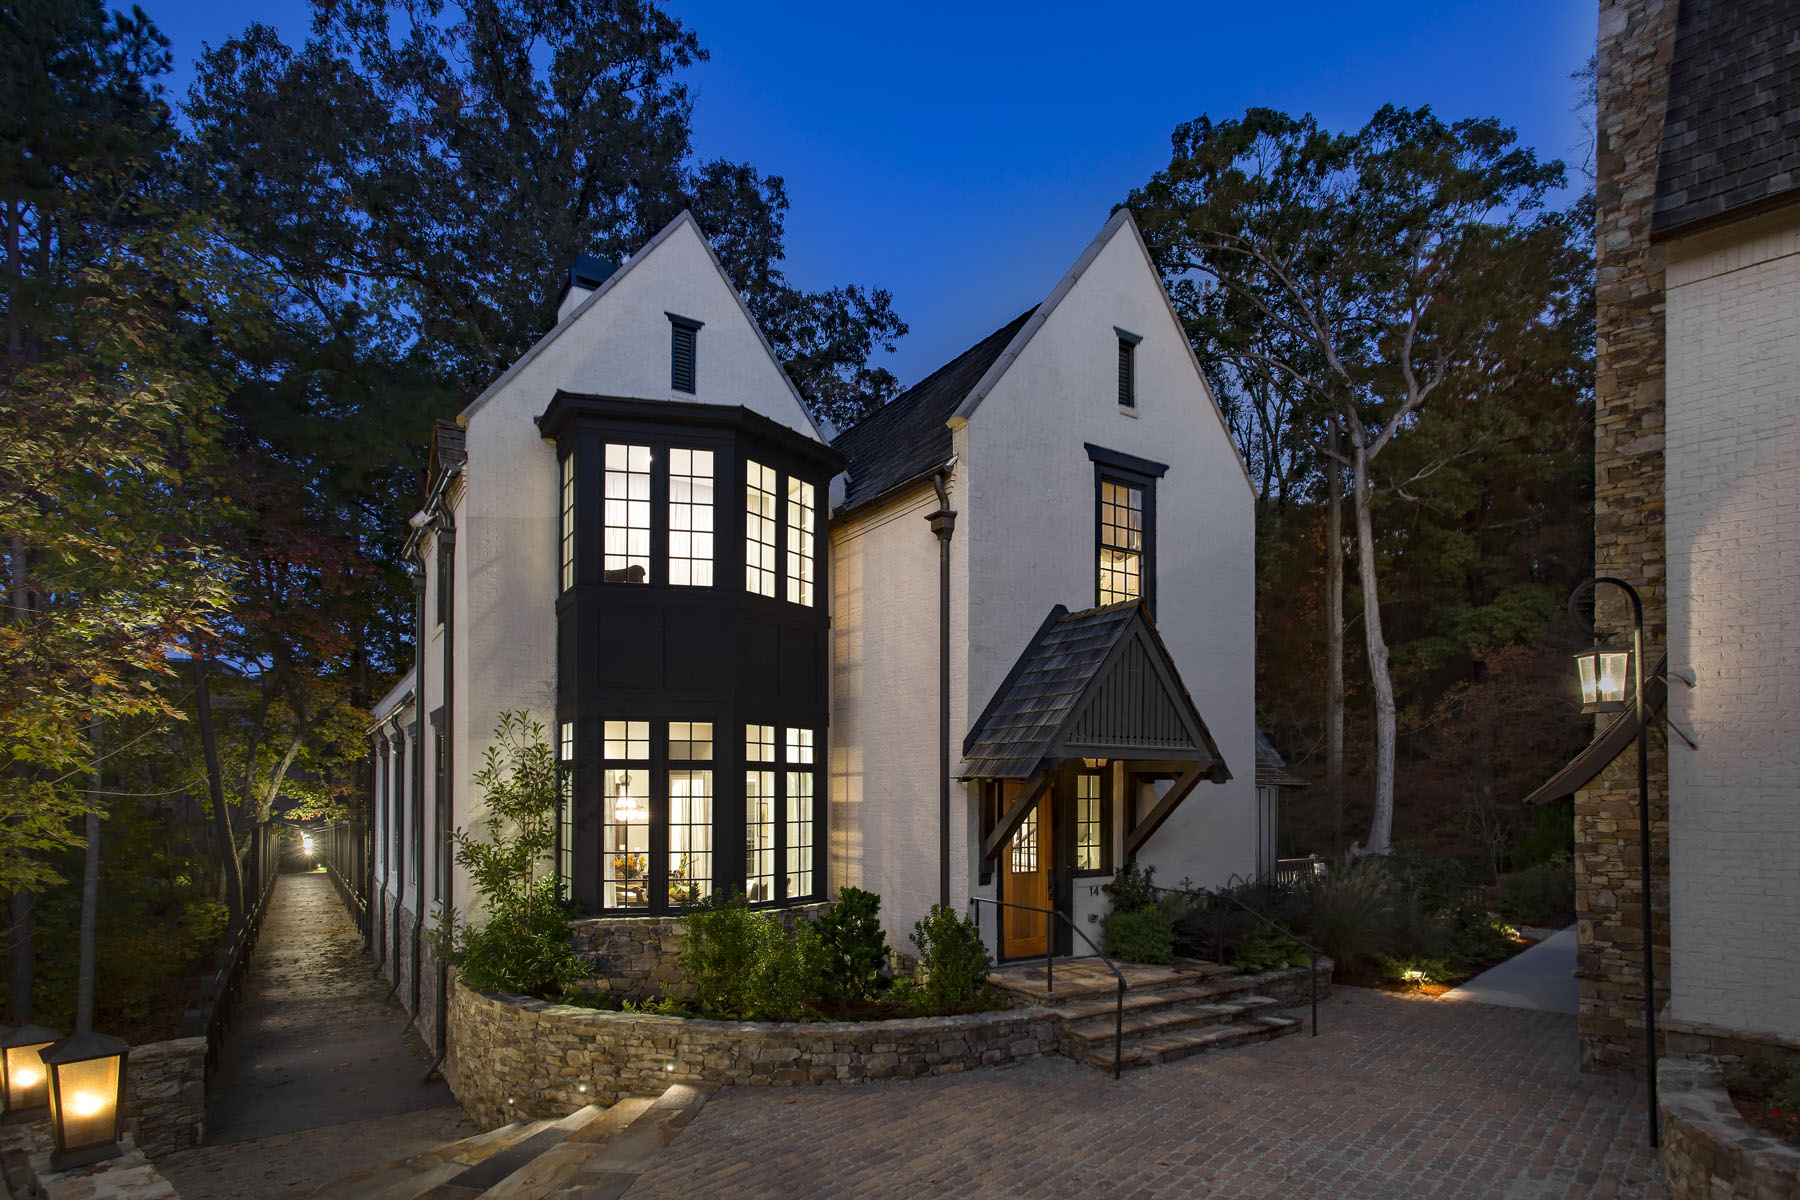 단독 가정 주택 용 매매 에 Exquisite European Estate Nestled in Woods of Serenbe's Swann Ridge 14 Swann Wynd Chattahoochee Hills, 조지아 30268 미국